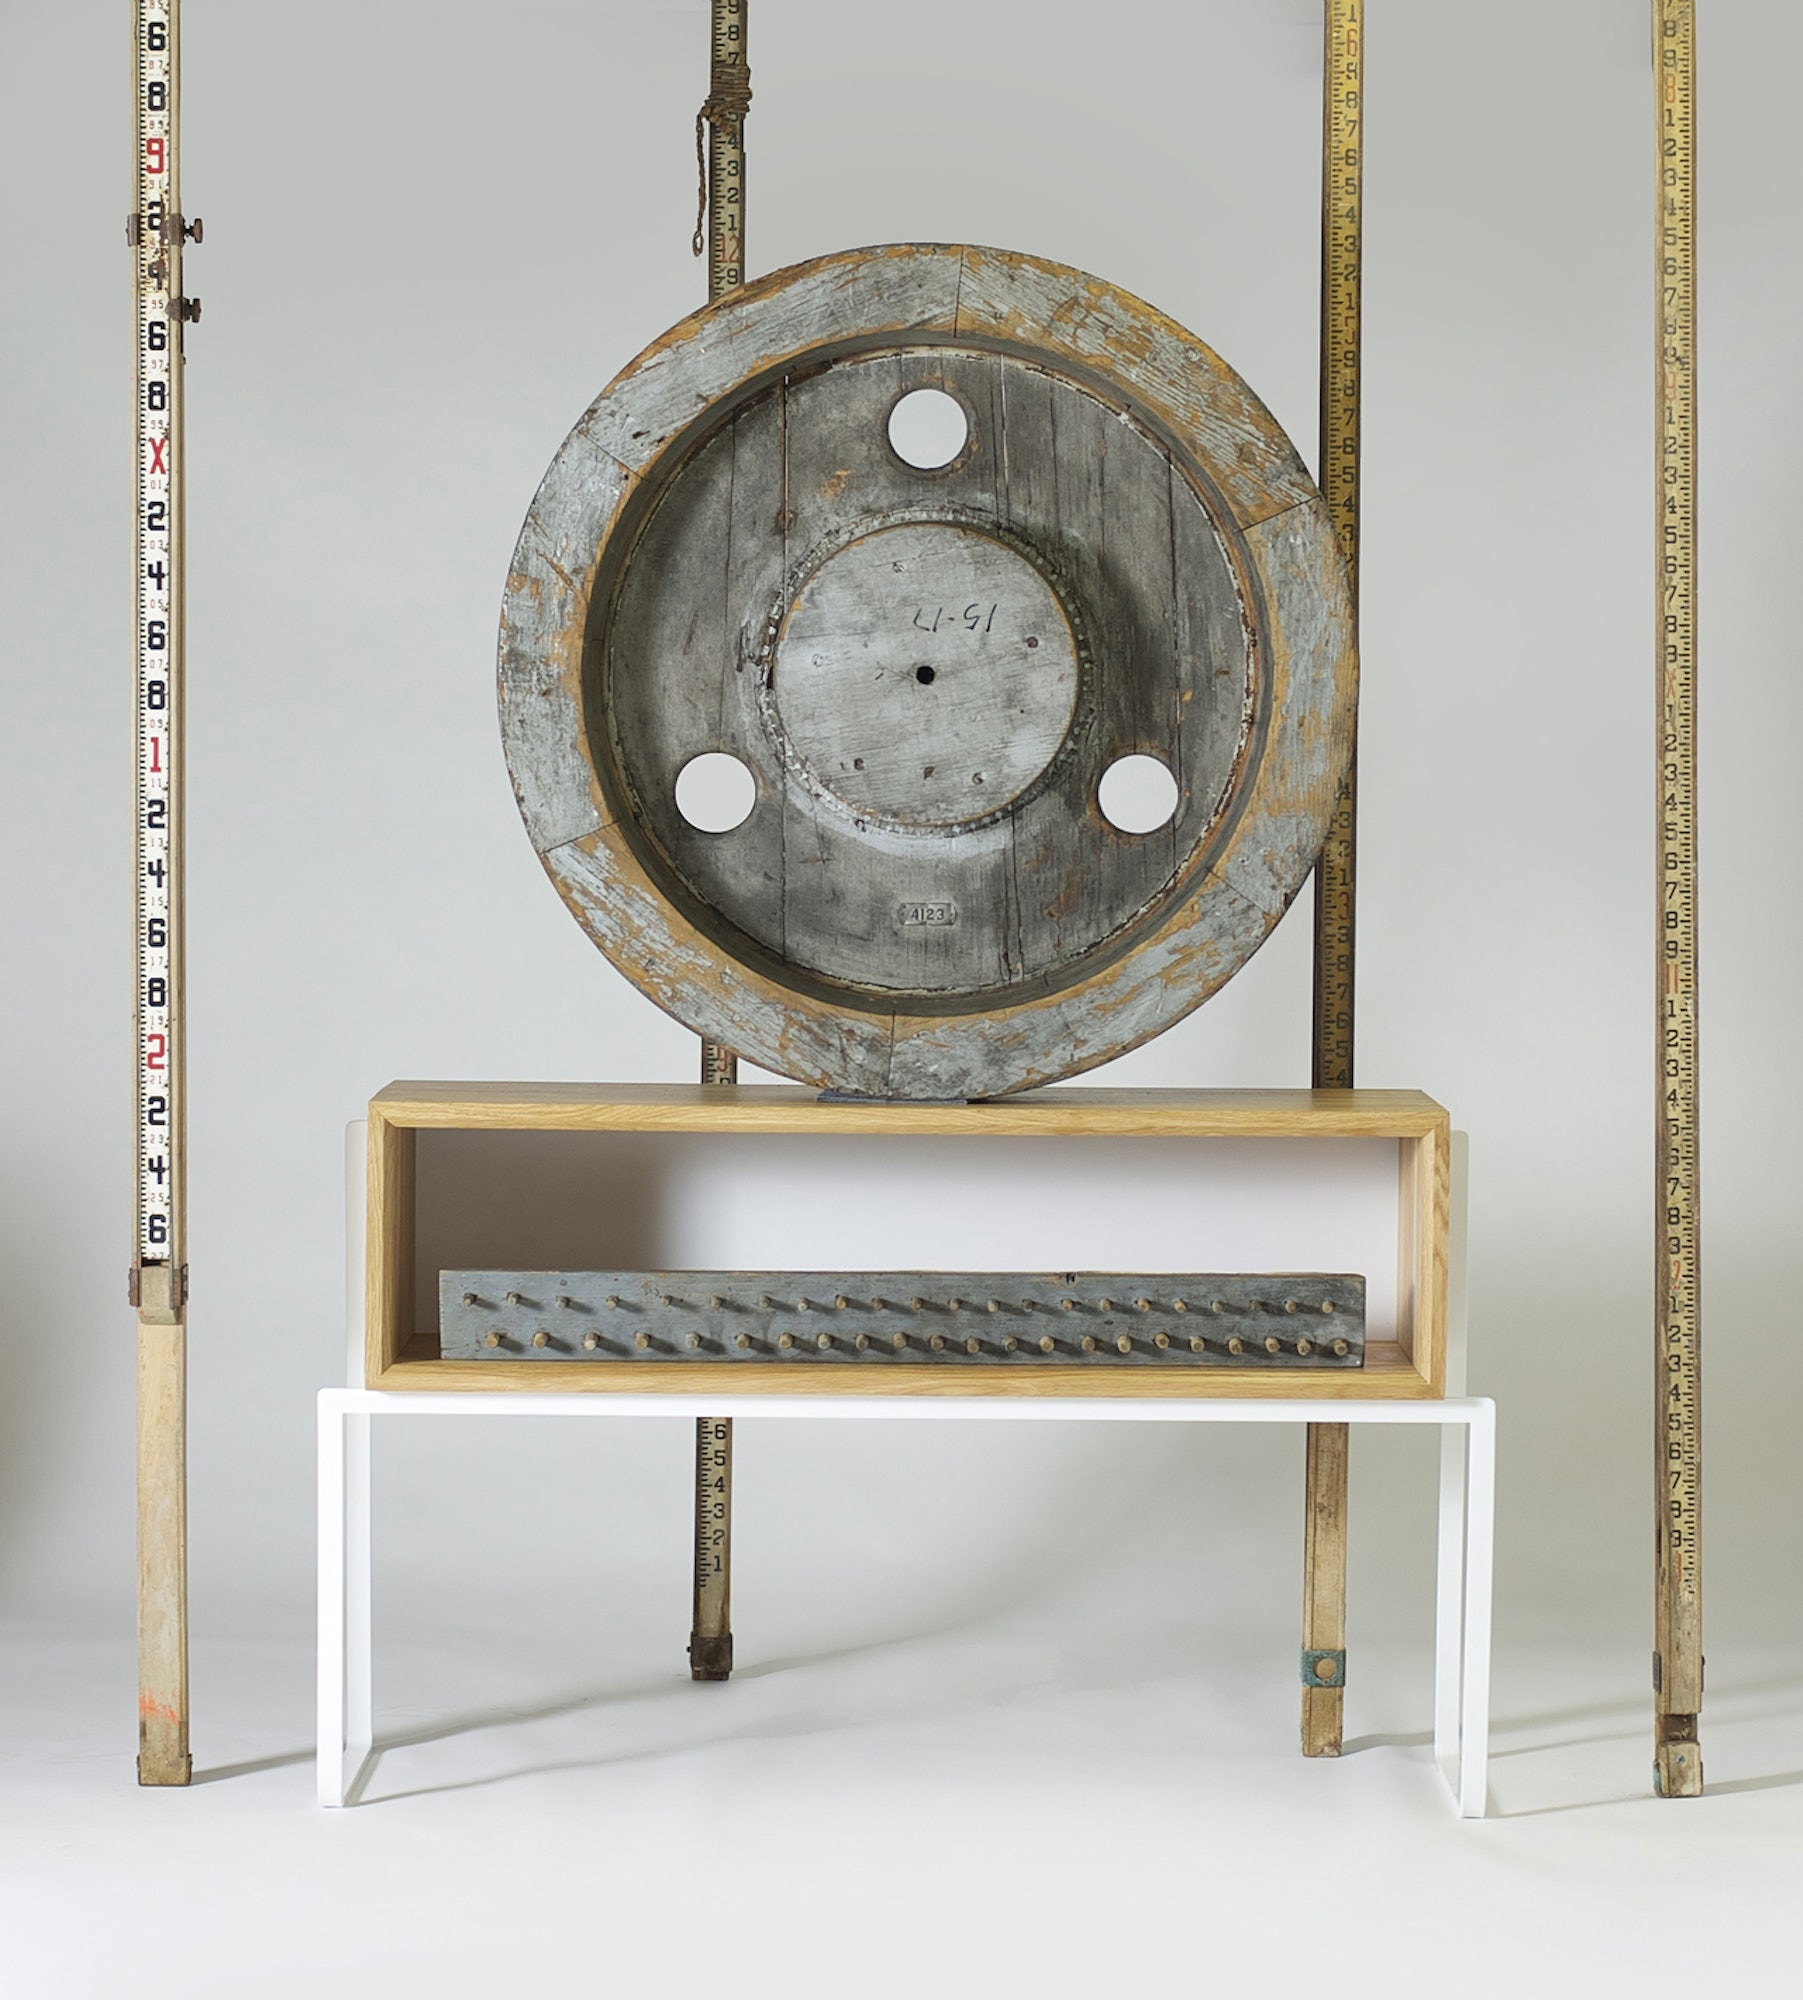 Sam_Ladwig_U-Line-Console-Table